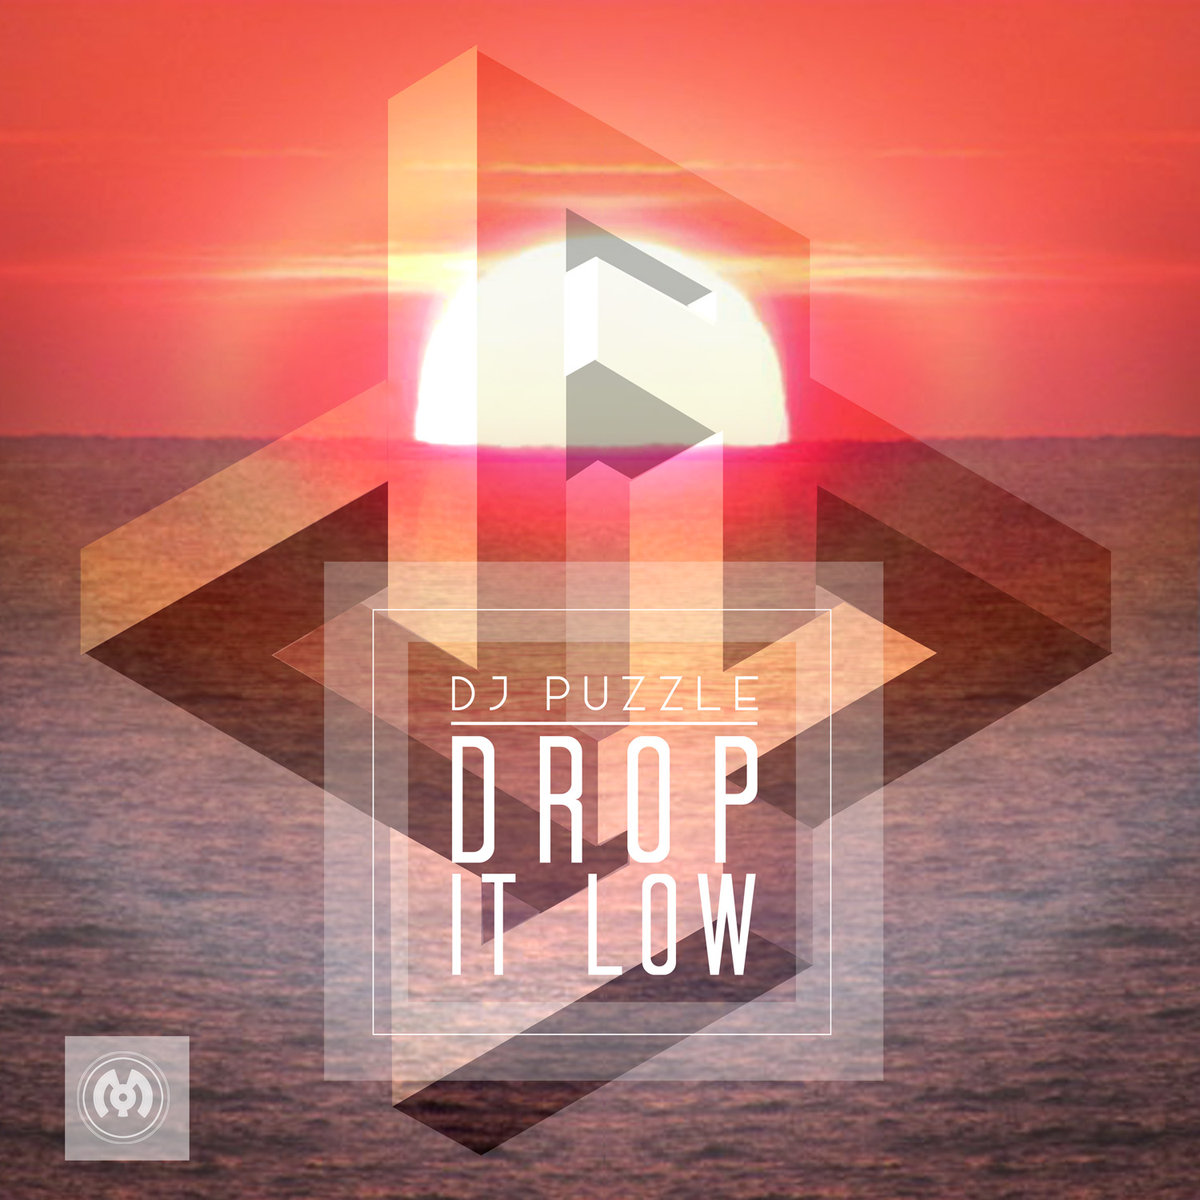 DJ Puzzle - Brain Machine (Werk It) @ 'Drop It Low' album (electronic, dubstep)